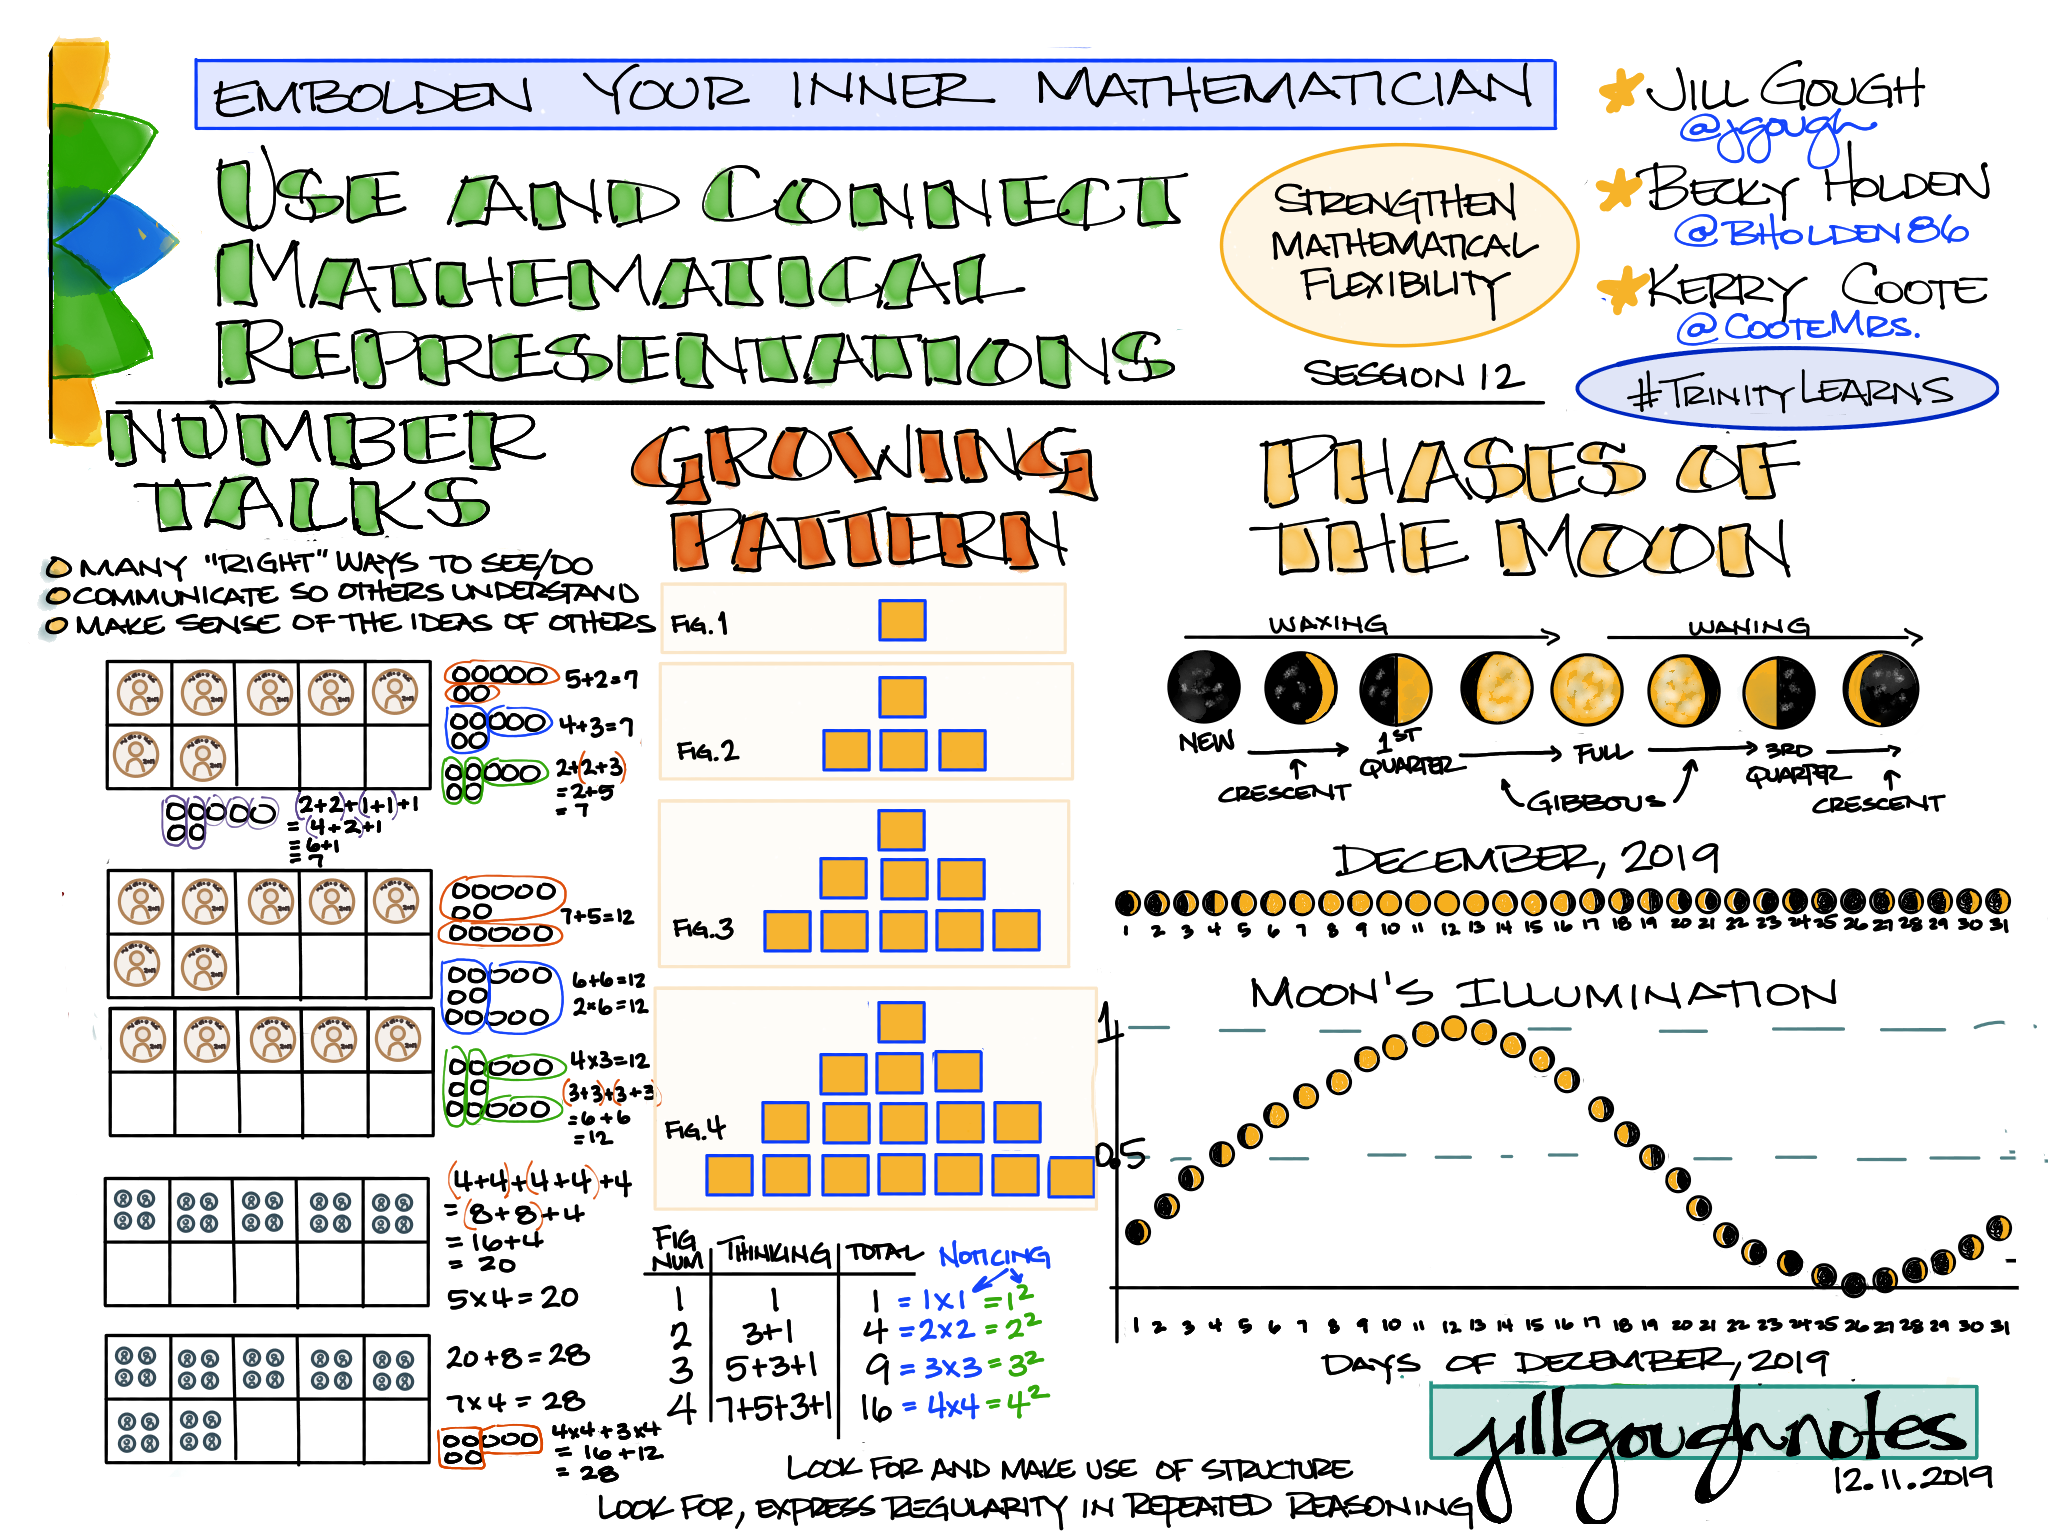 #EmboldenYourInnerMathematician session 12 #TrinityLearns #AuthorAndIllustrate Use and Connect Mathematical Representations with @jgough @bholden86 @CooteMrs